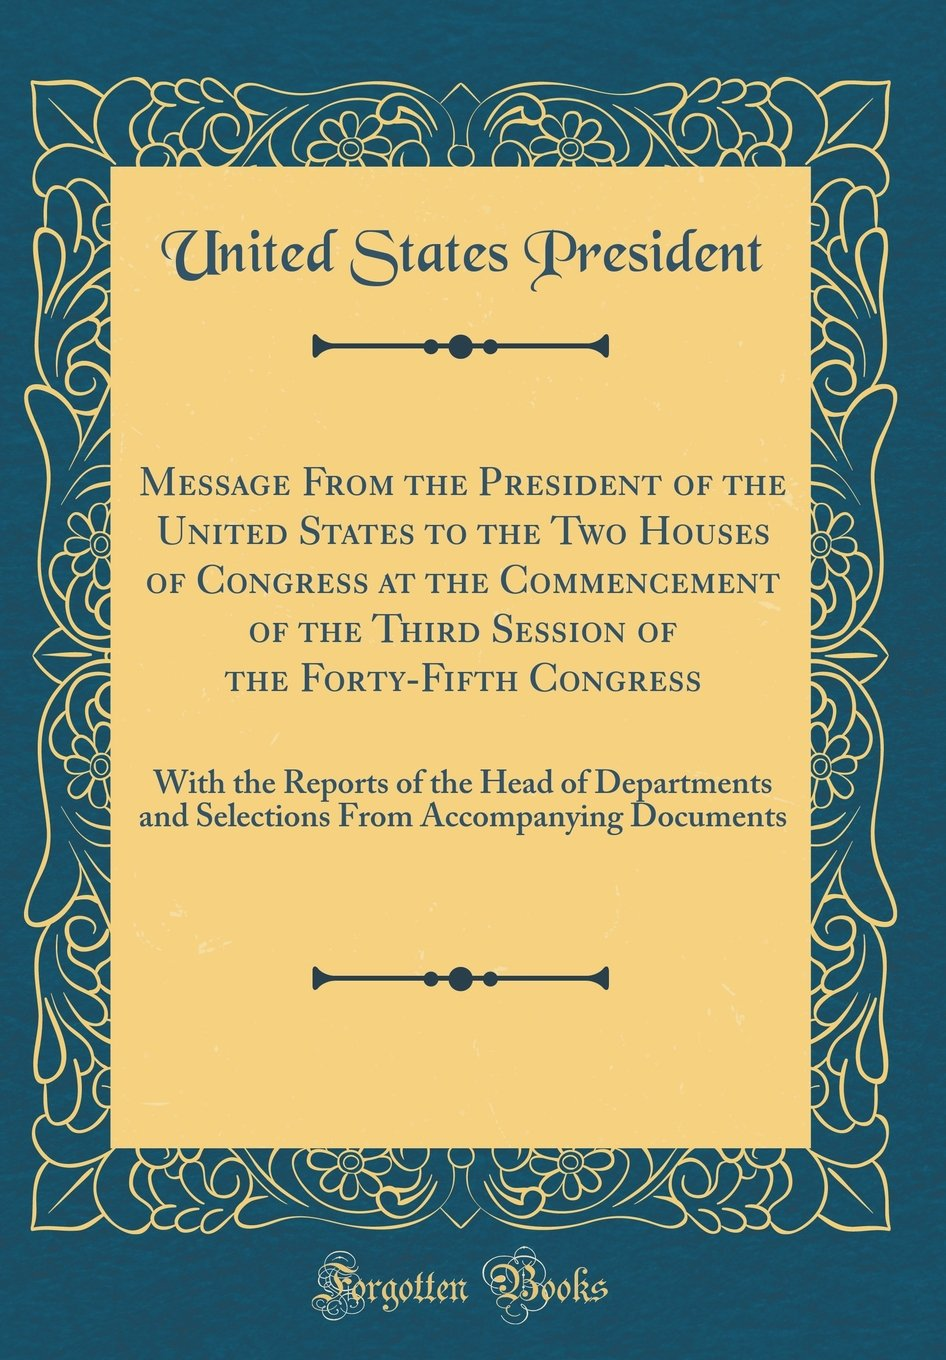 Message from the President of the United States to the Two Houses of Congress at the Commencement of the Third Session of the Forty-Fifth Congress: ... from Accompanying Documents (Classic Reprint) pdf